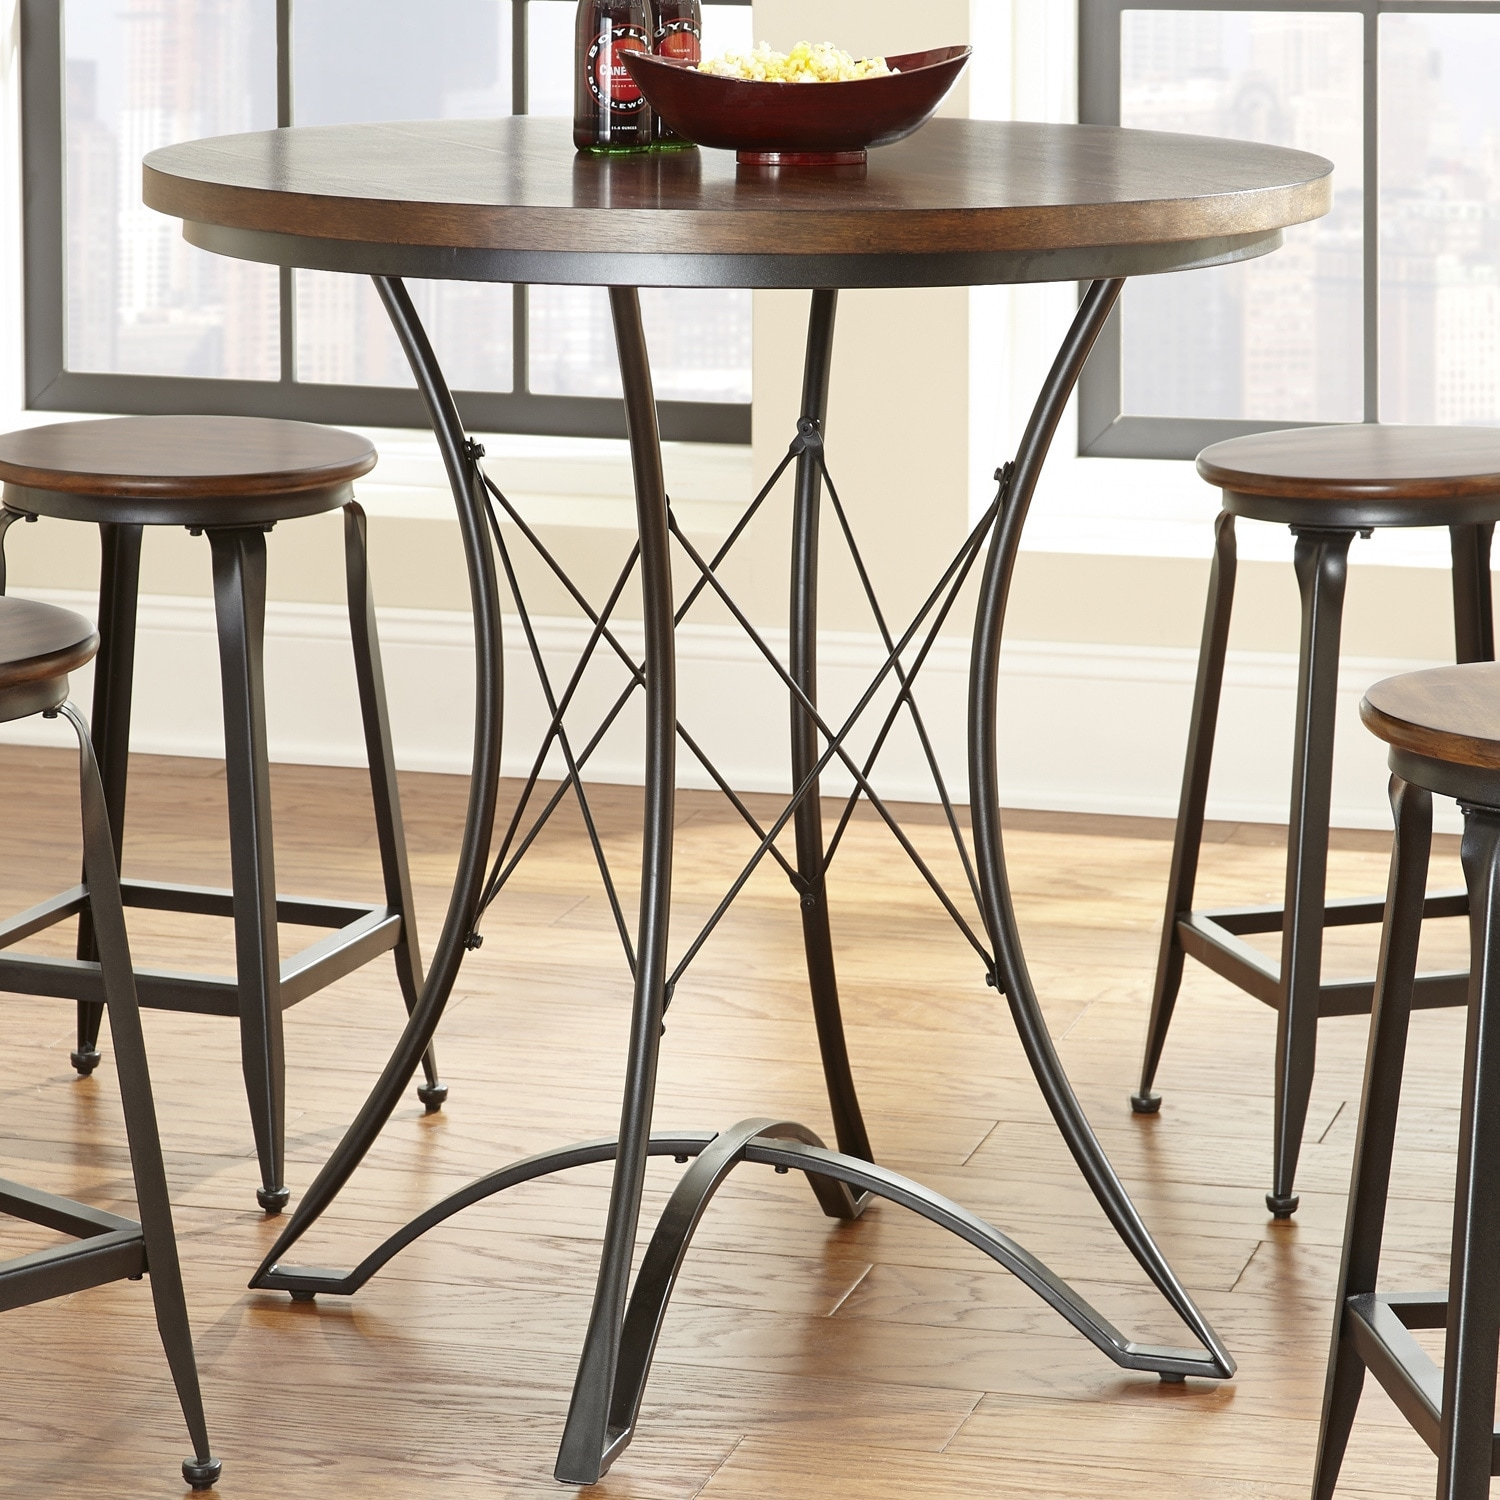 Shop greyson living counter height pub table on sale free shop greyson living counter height pub table on sale free shipping today overstock 8500220 watchthetrailerfo